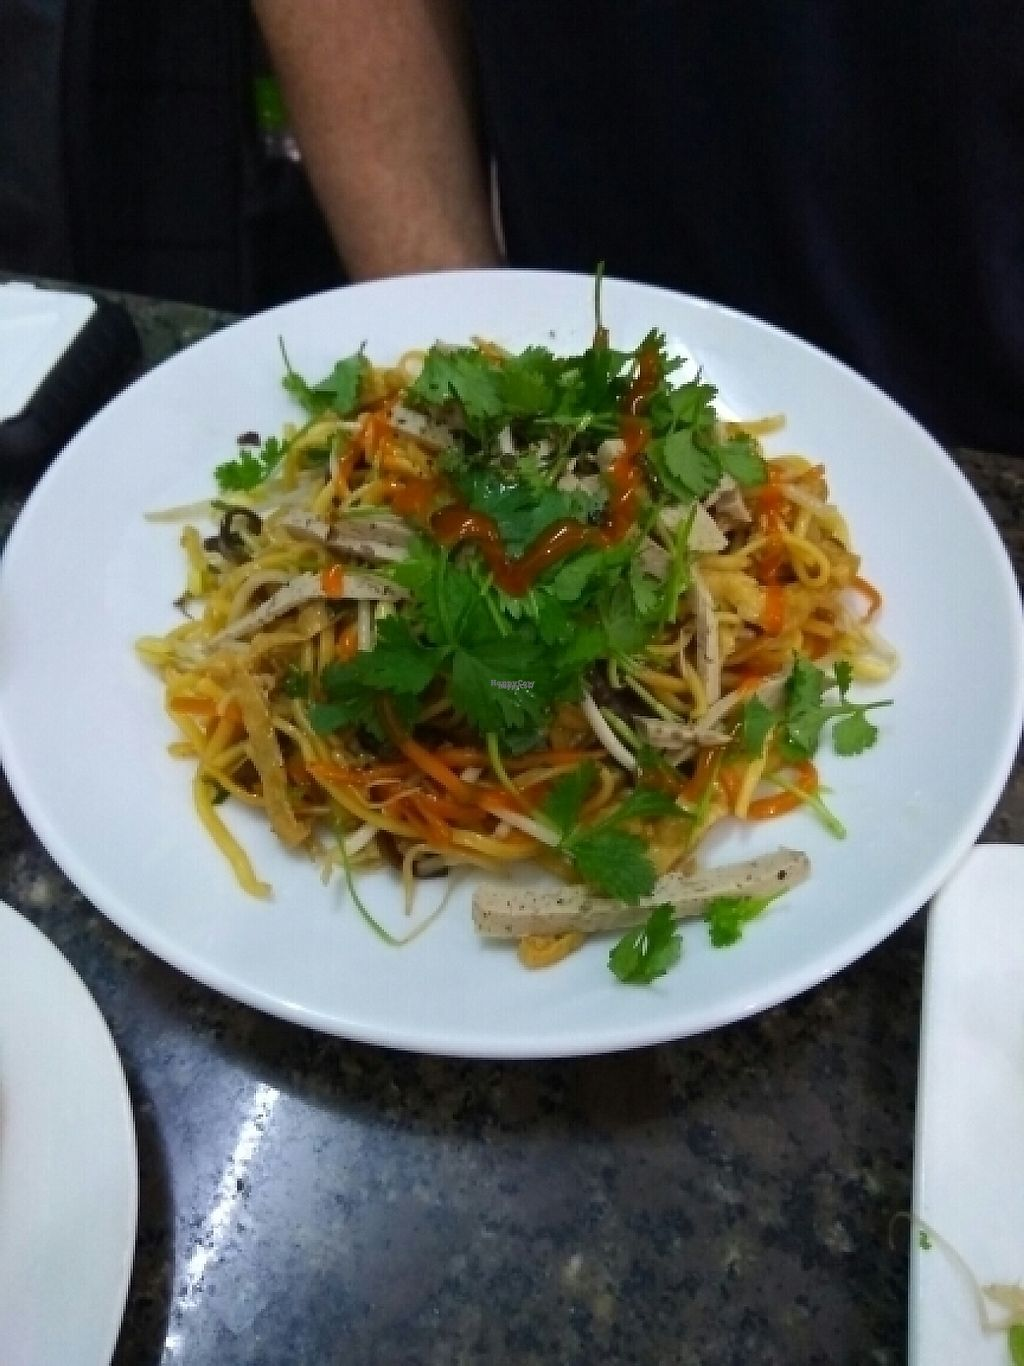 """Photo of Ngoc Chi  by <a href=""""/members/profile/Miggi"""">Miggi</a> <br/>Fried Noodles <br/> January 5, 2017  - <a href='/contact/abuse/image/25980/208311'>Report</a>"""